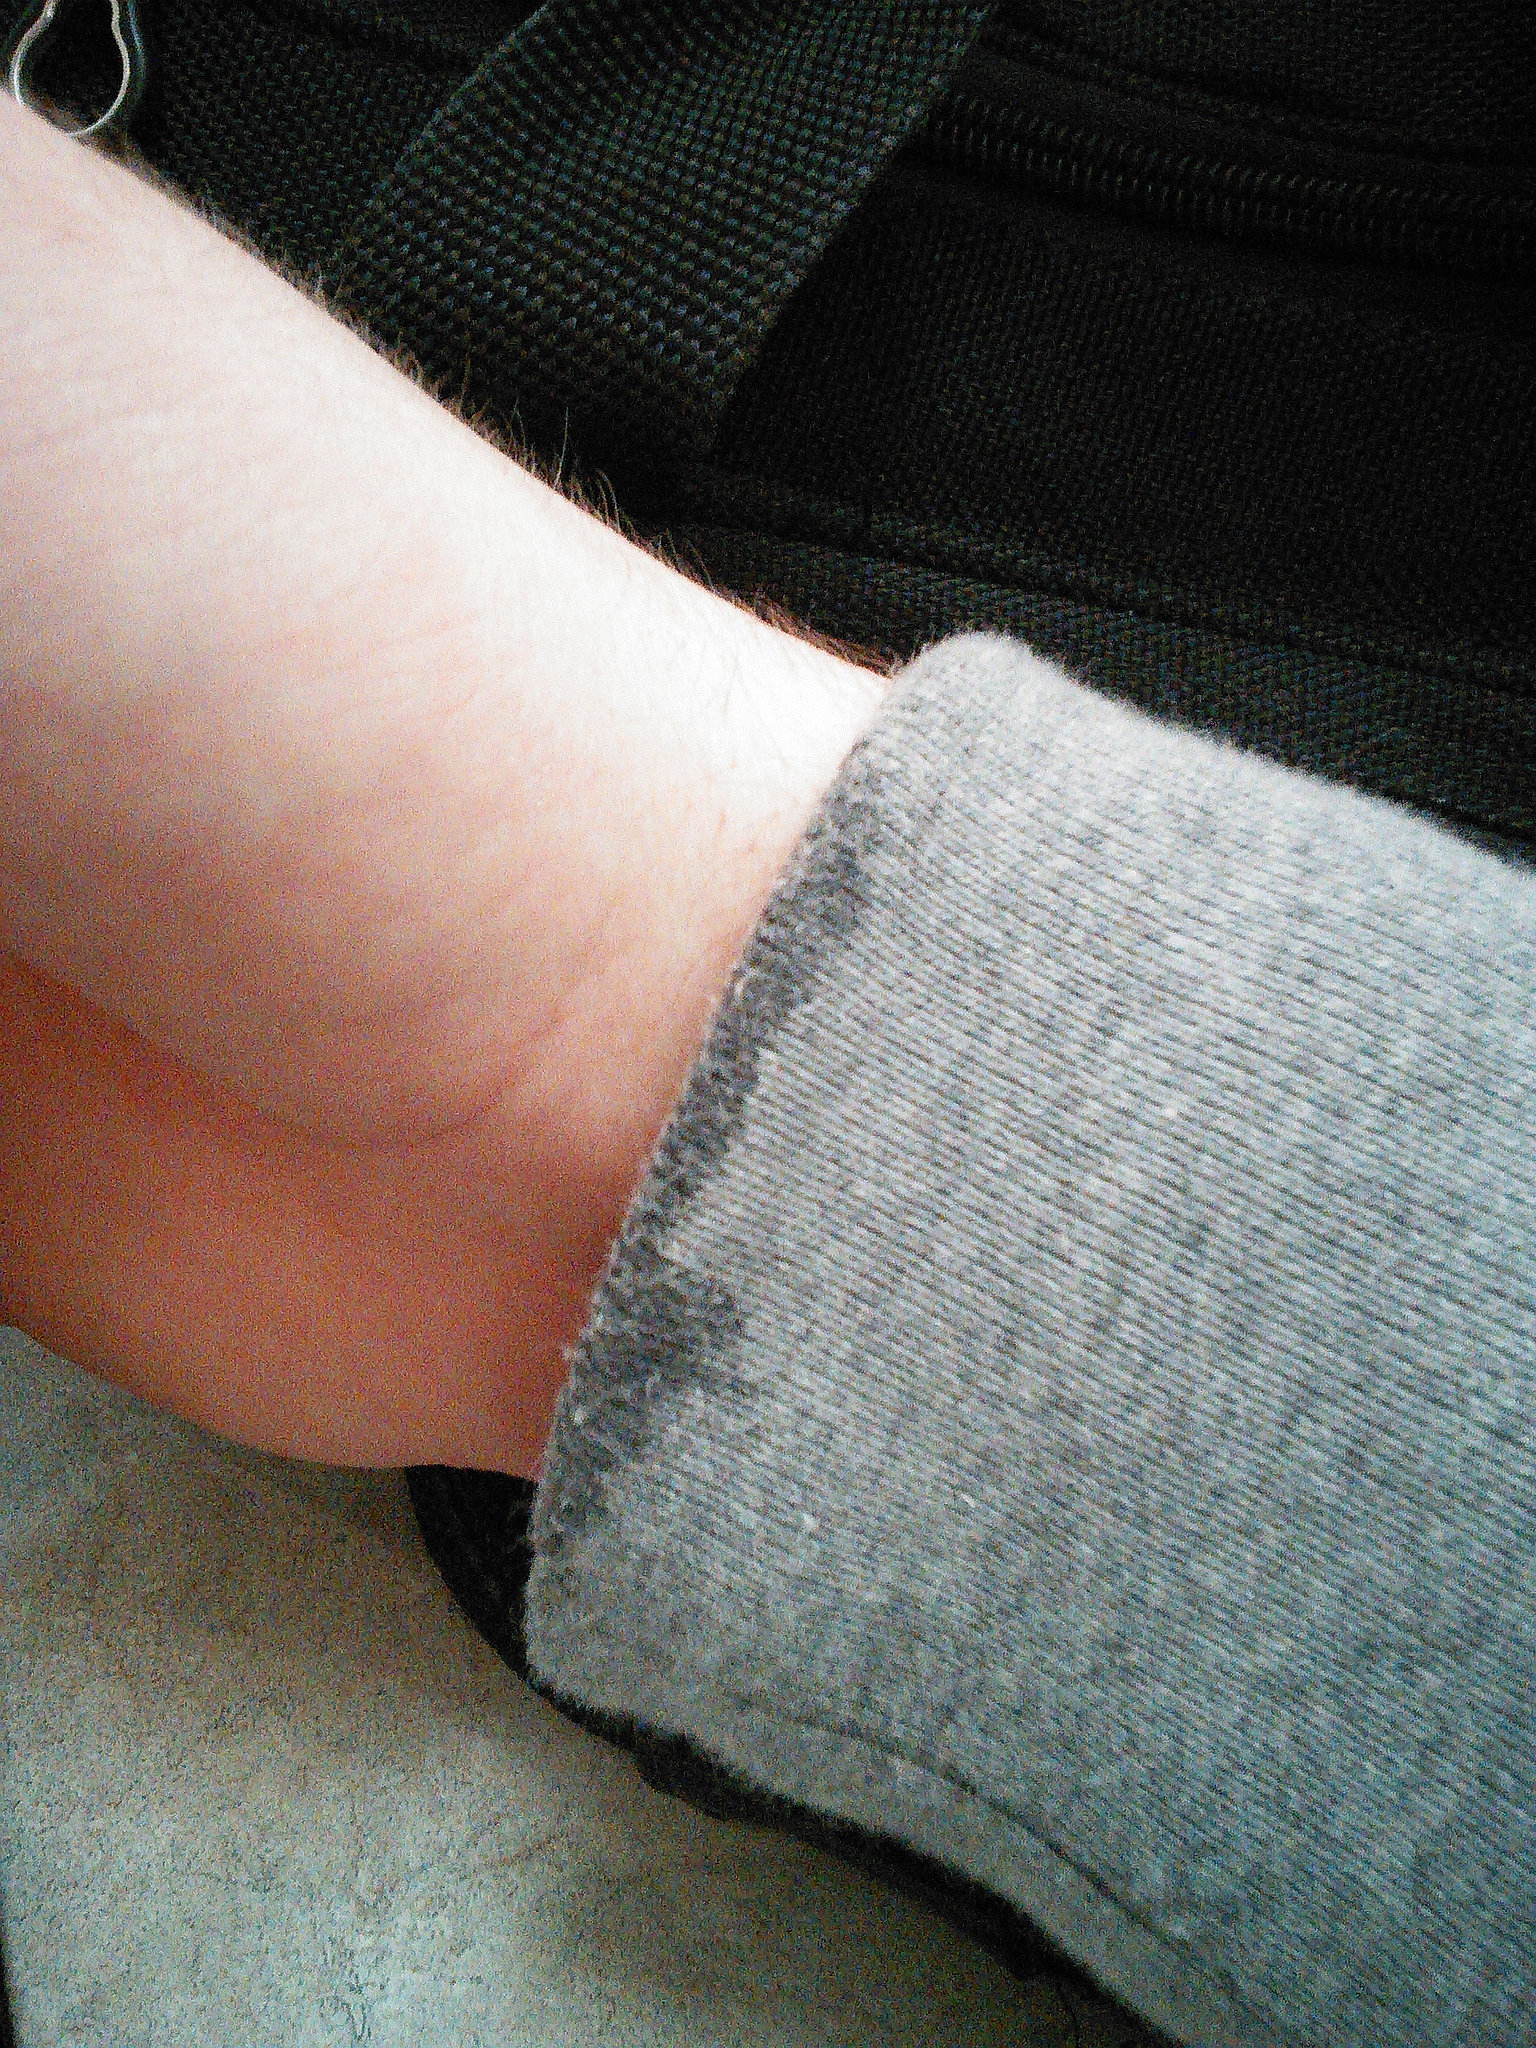 Washing Your Hands With a Sweater On